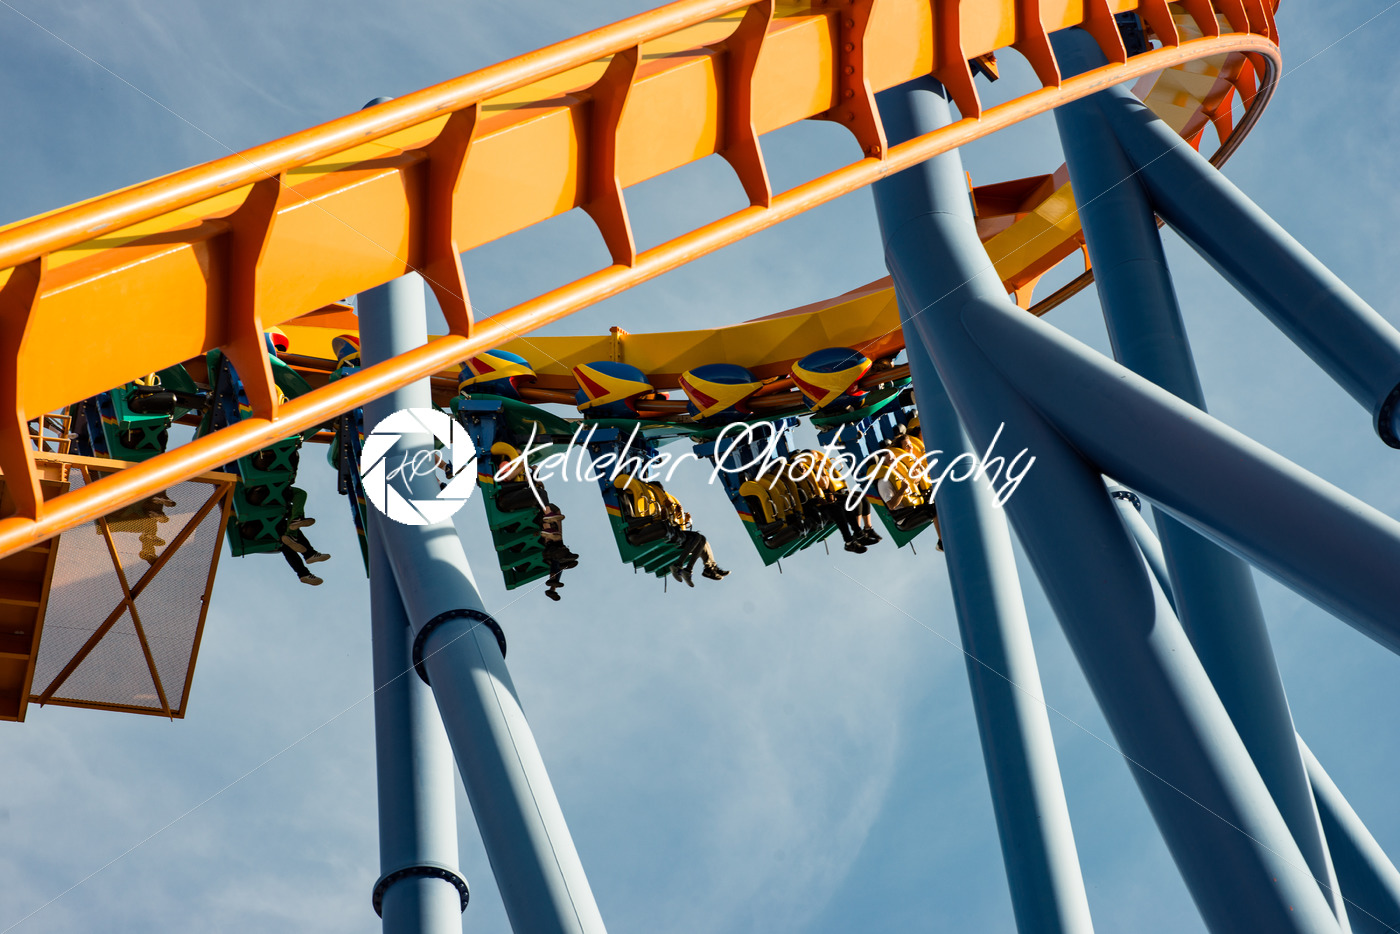 ALLENTOWN, PA – OCTOBER 22: Roller Coasters at Dorney Park in Allentown, Pennsylvania - Kelleher Photography Store